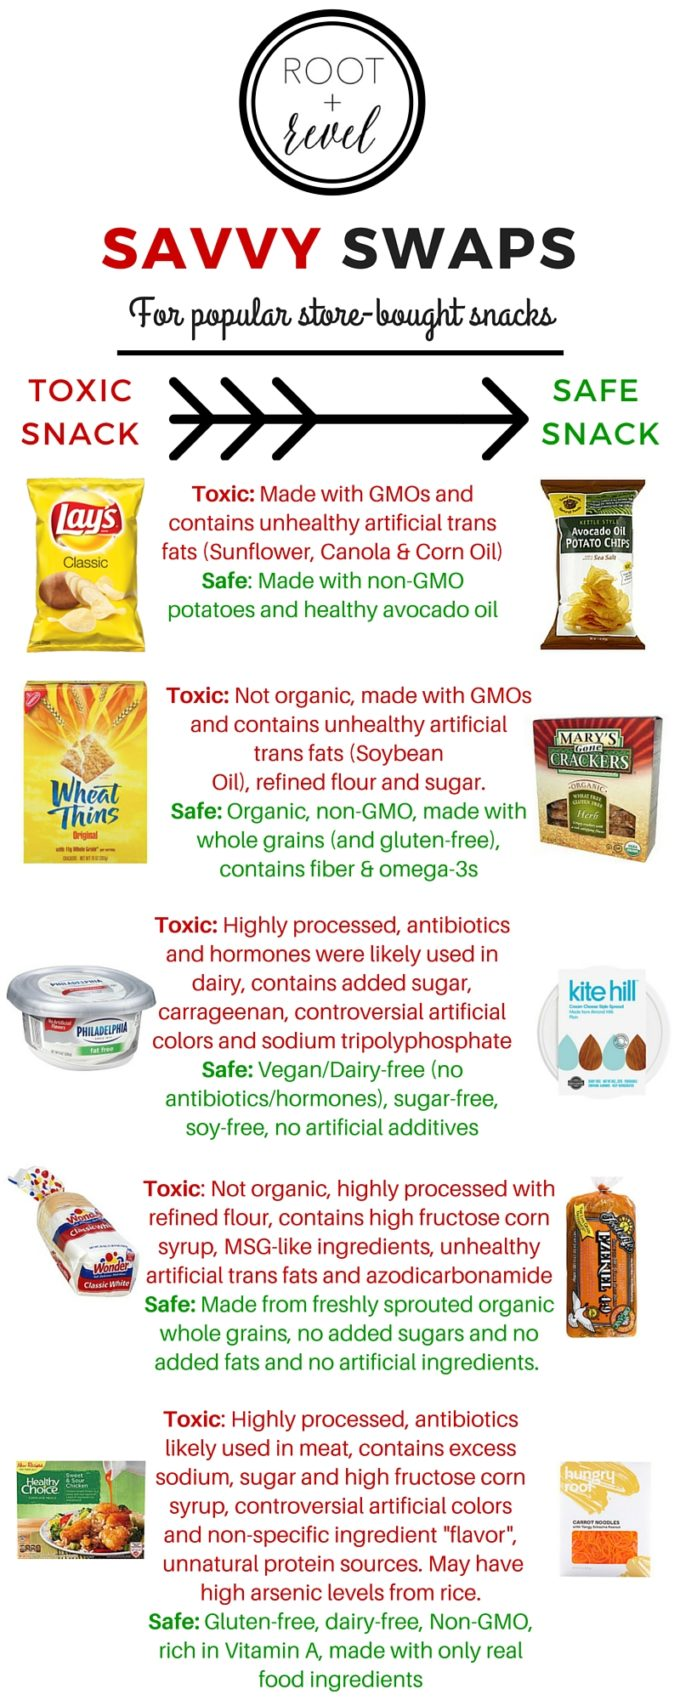 Savvy Swaps for popular store-bought products. Today we're looking at healthier packaged food alternatives that taste just as delicious, without any of the negative additives. | rootandrevel.com